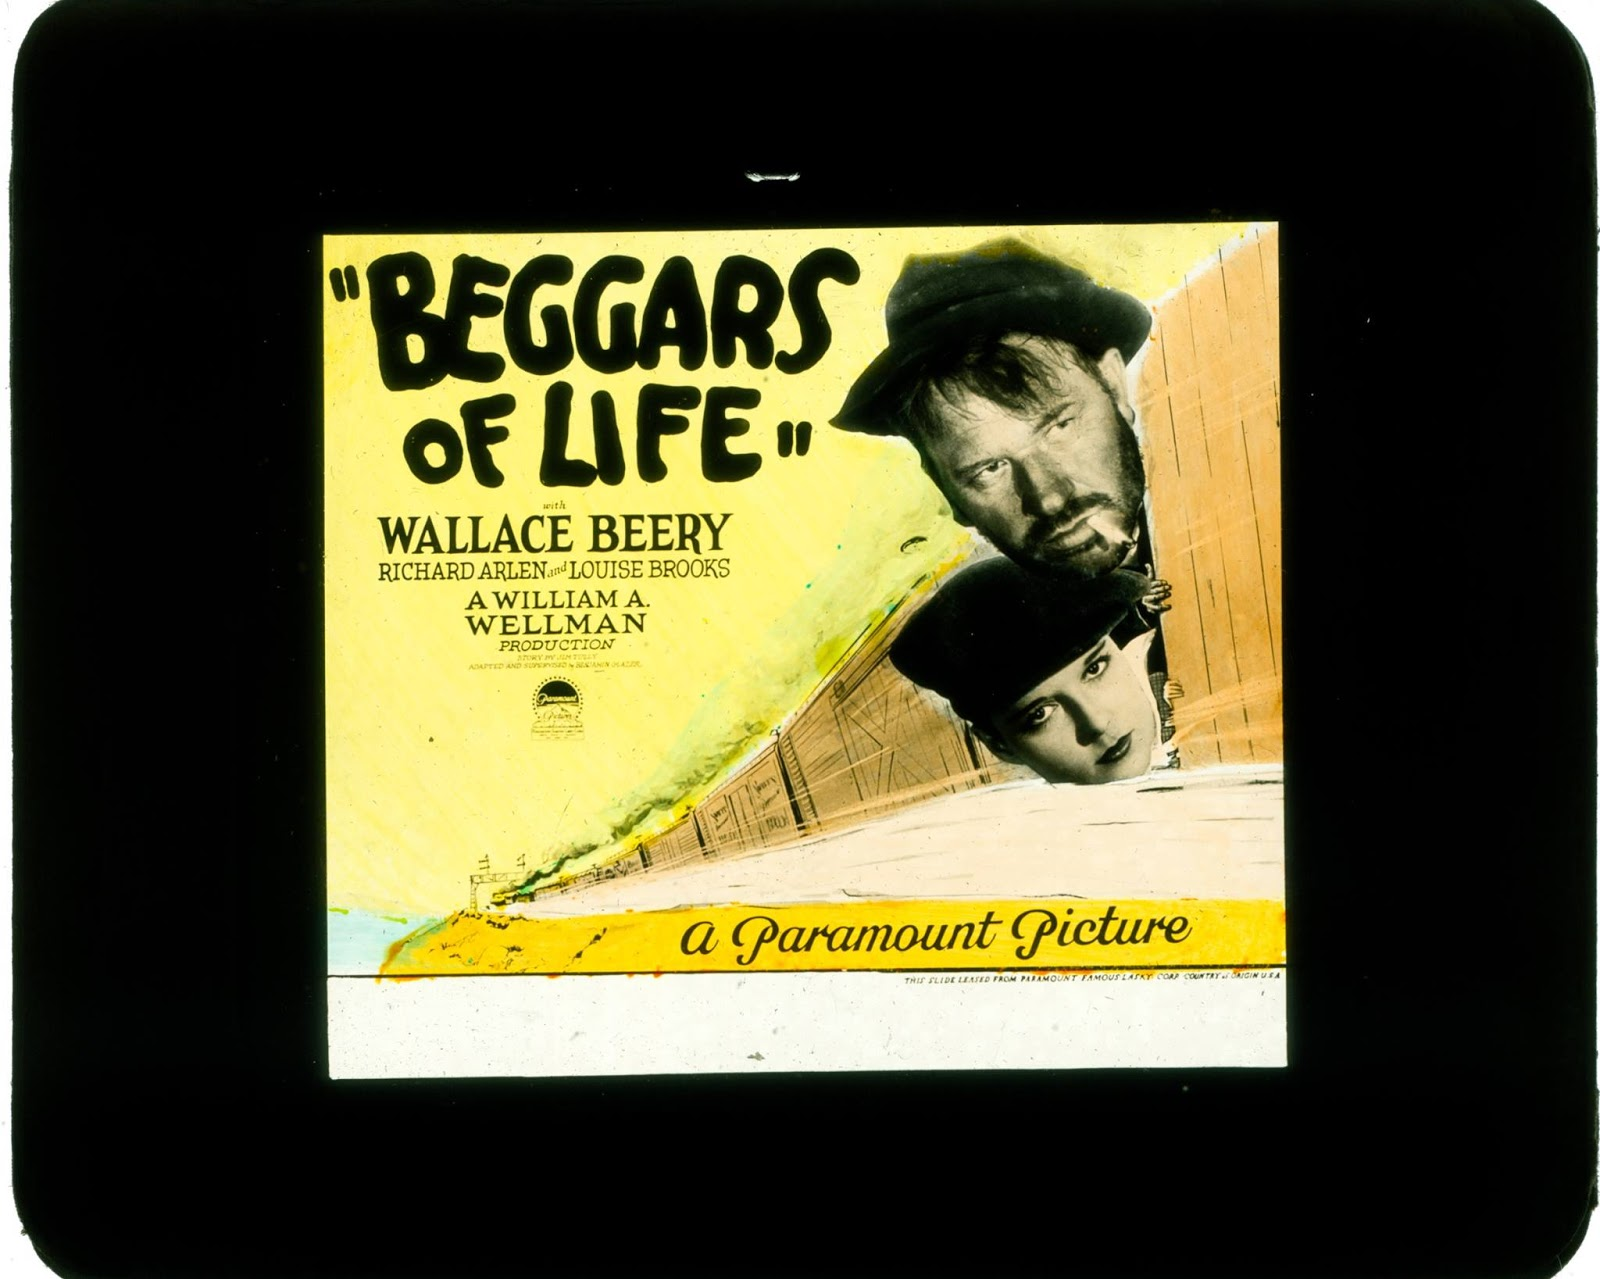 beggars of britain tony parsons essay The transatlantic review was a literary magazine begun in 1959 it was founded and edited by joseph f mccrindle (1923-2008), a former literary agent who spent parts of the year in new york.